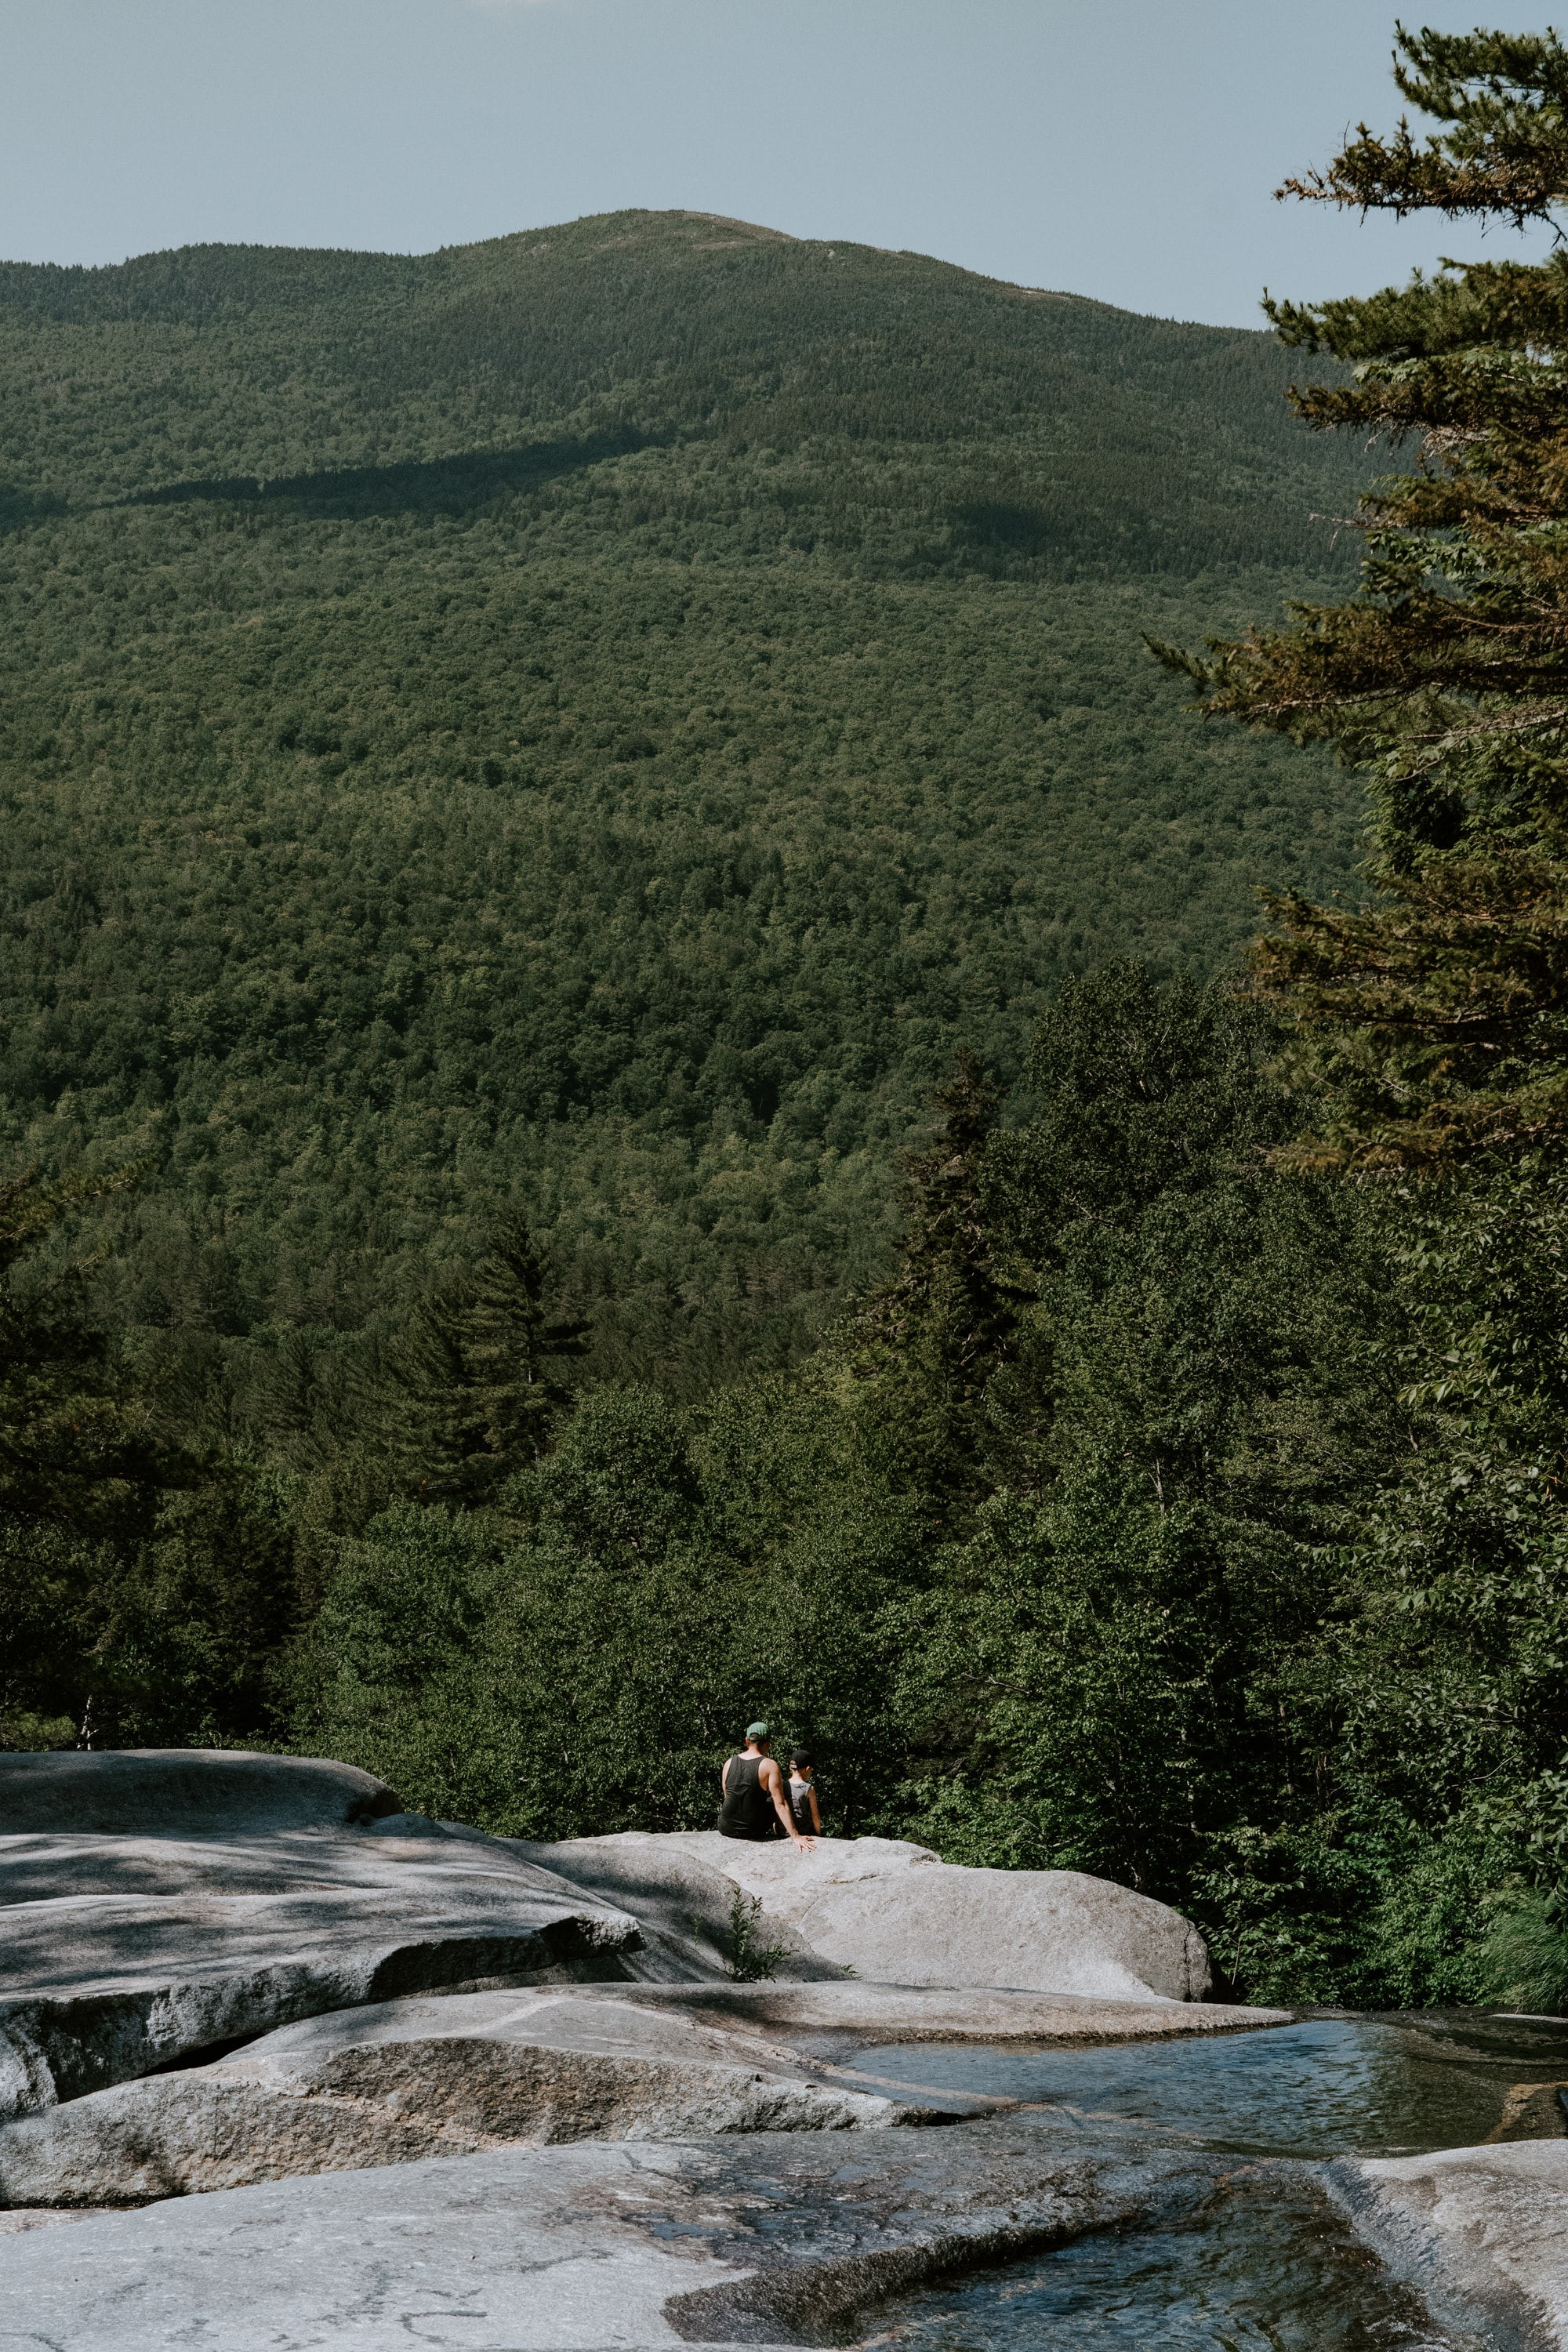 person sitting on mountain cliff overlooking green trees during daytime